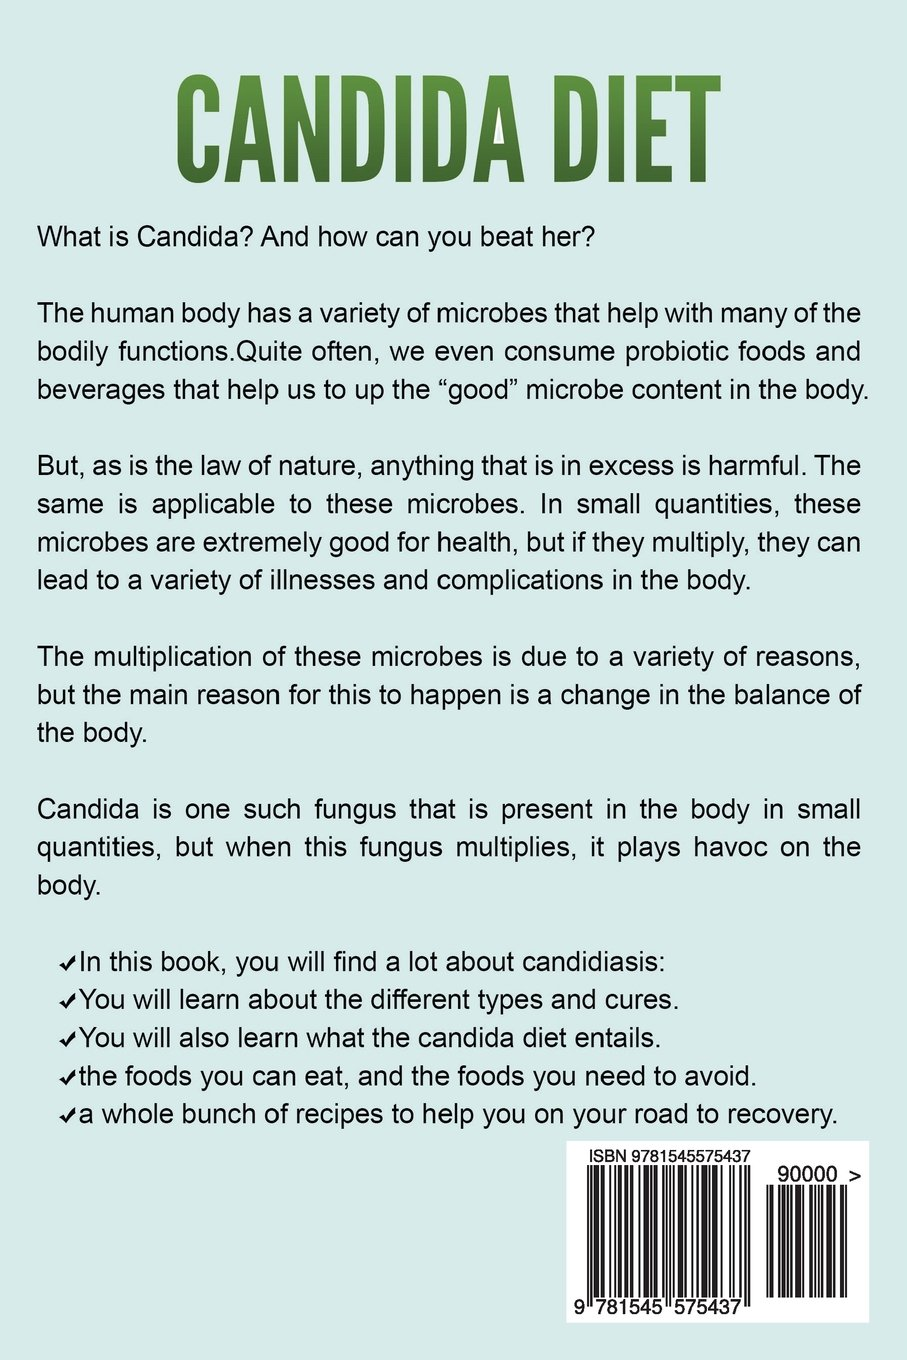 candida diet: the ultimate candida diet program to clean your system